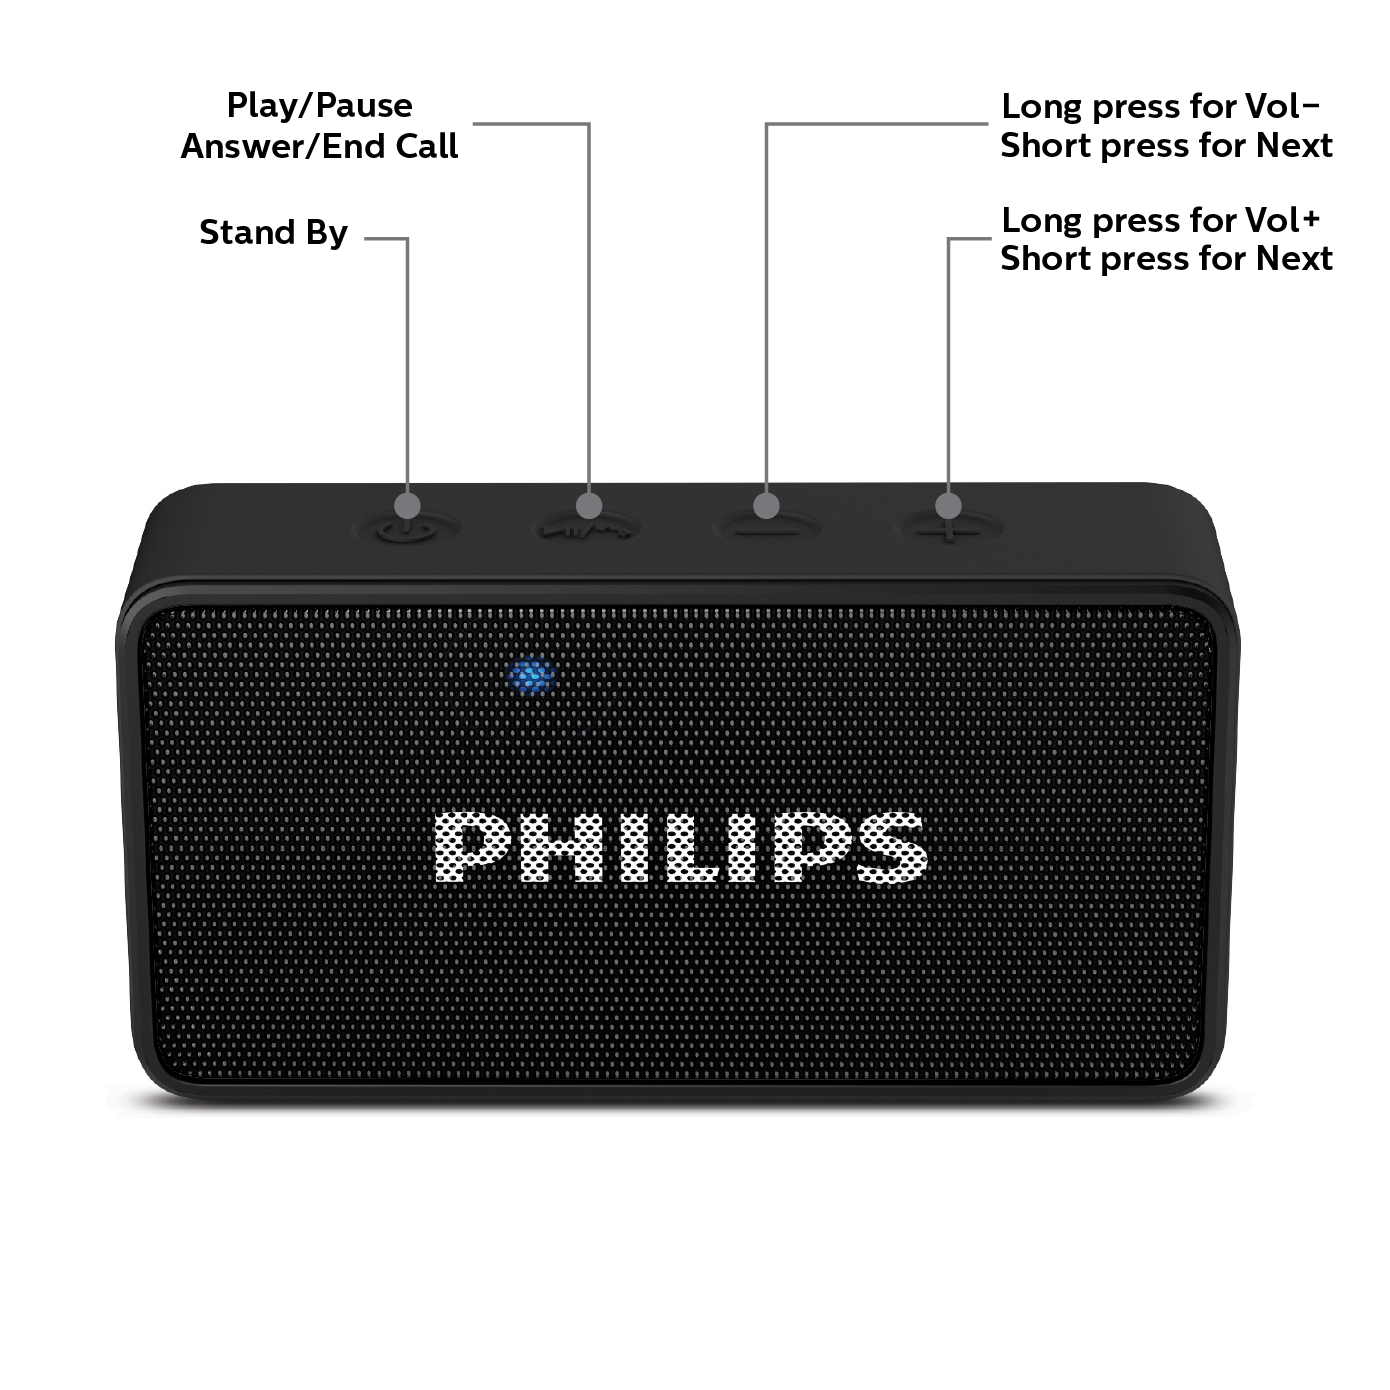 Philips Bluetooth Speaker Portable: Philips BT64B Portable Bluetooth Speakers: Amazon.in: Electronics